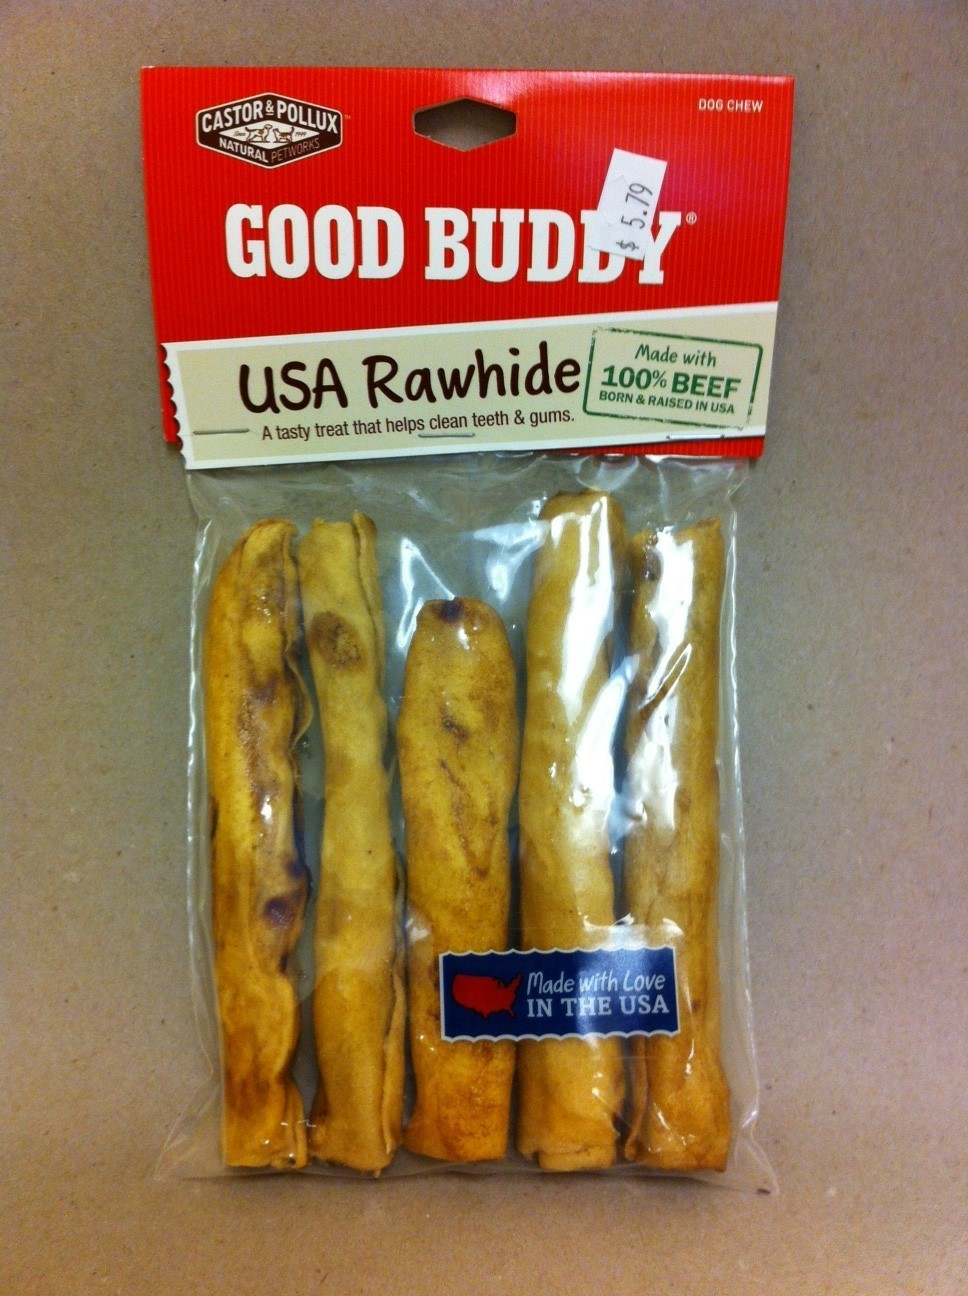 Good Buddy Rawhide Chews